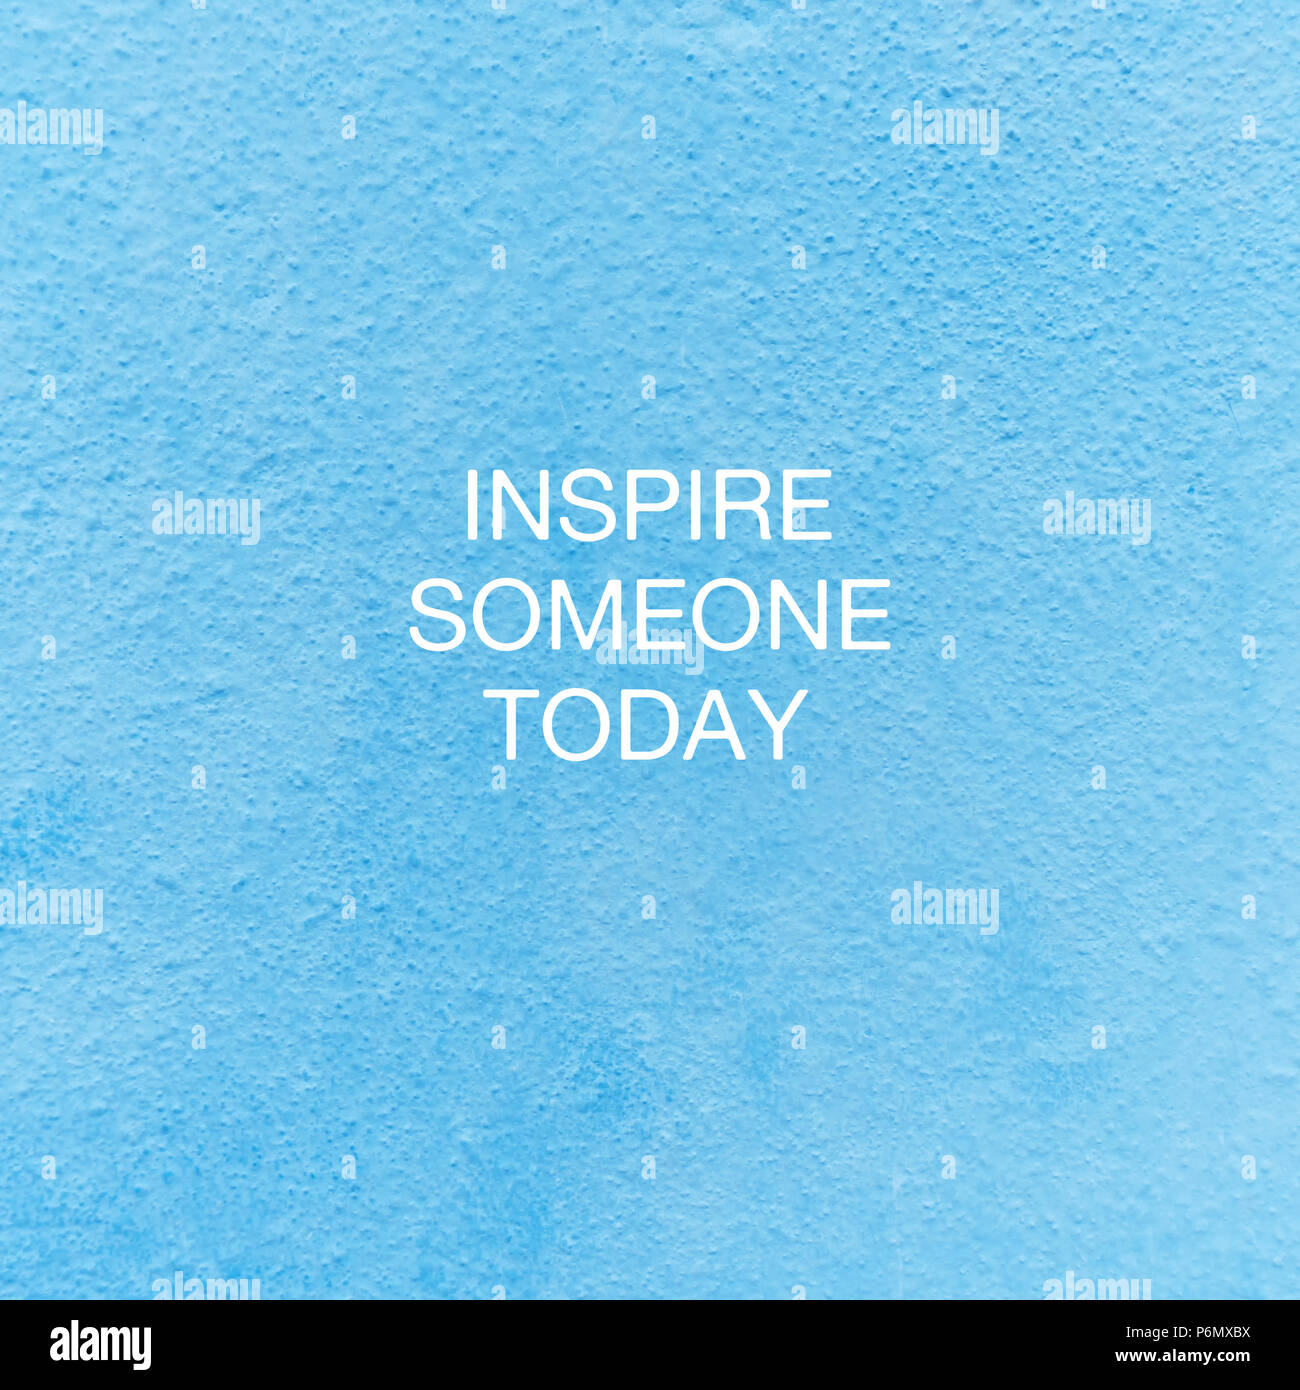 Motivational and inspirational quote - Inspire someone today. - Stock Image